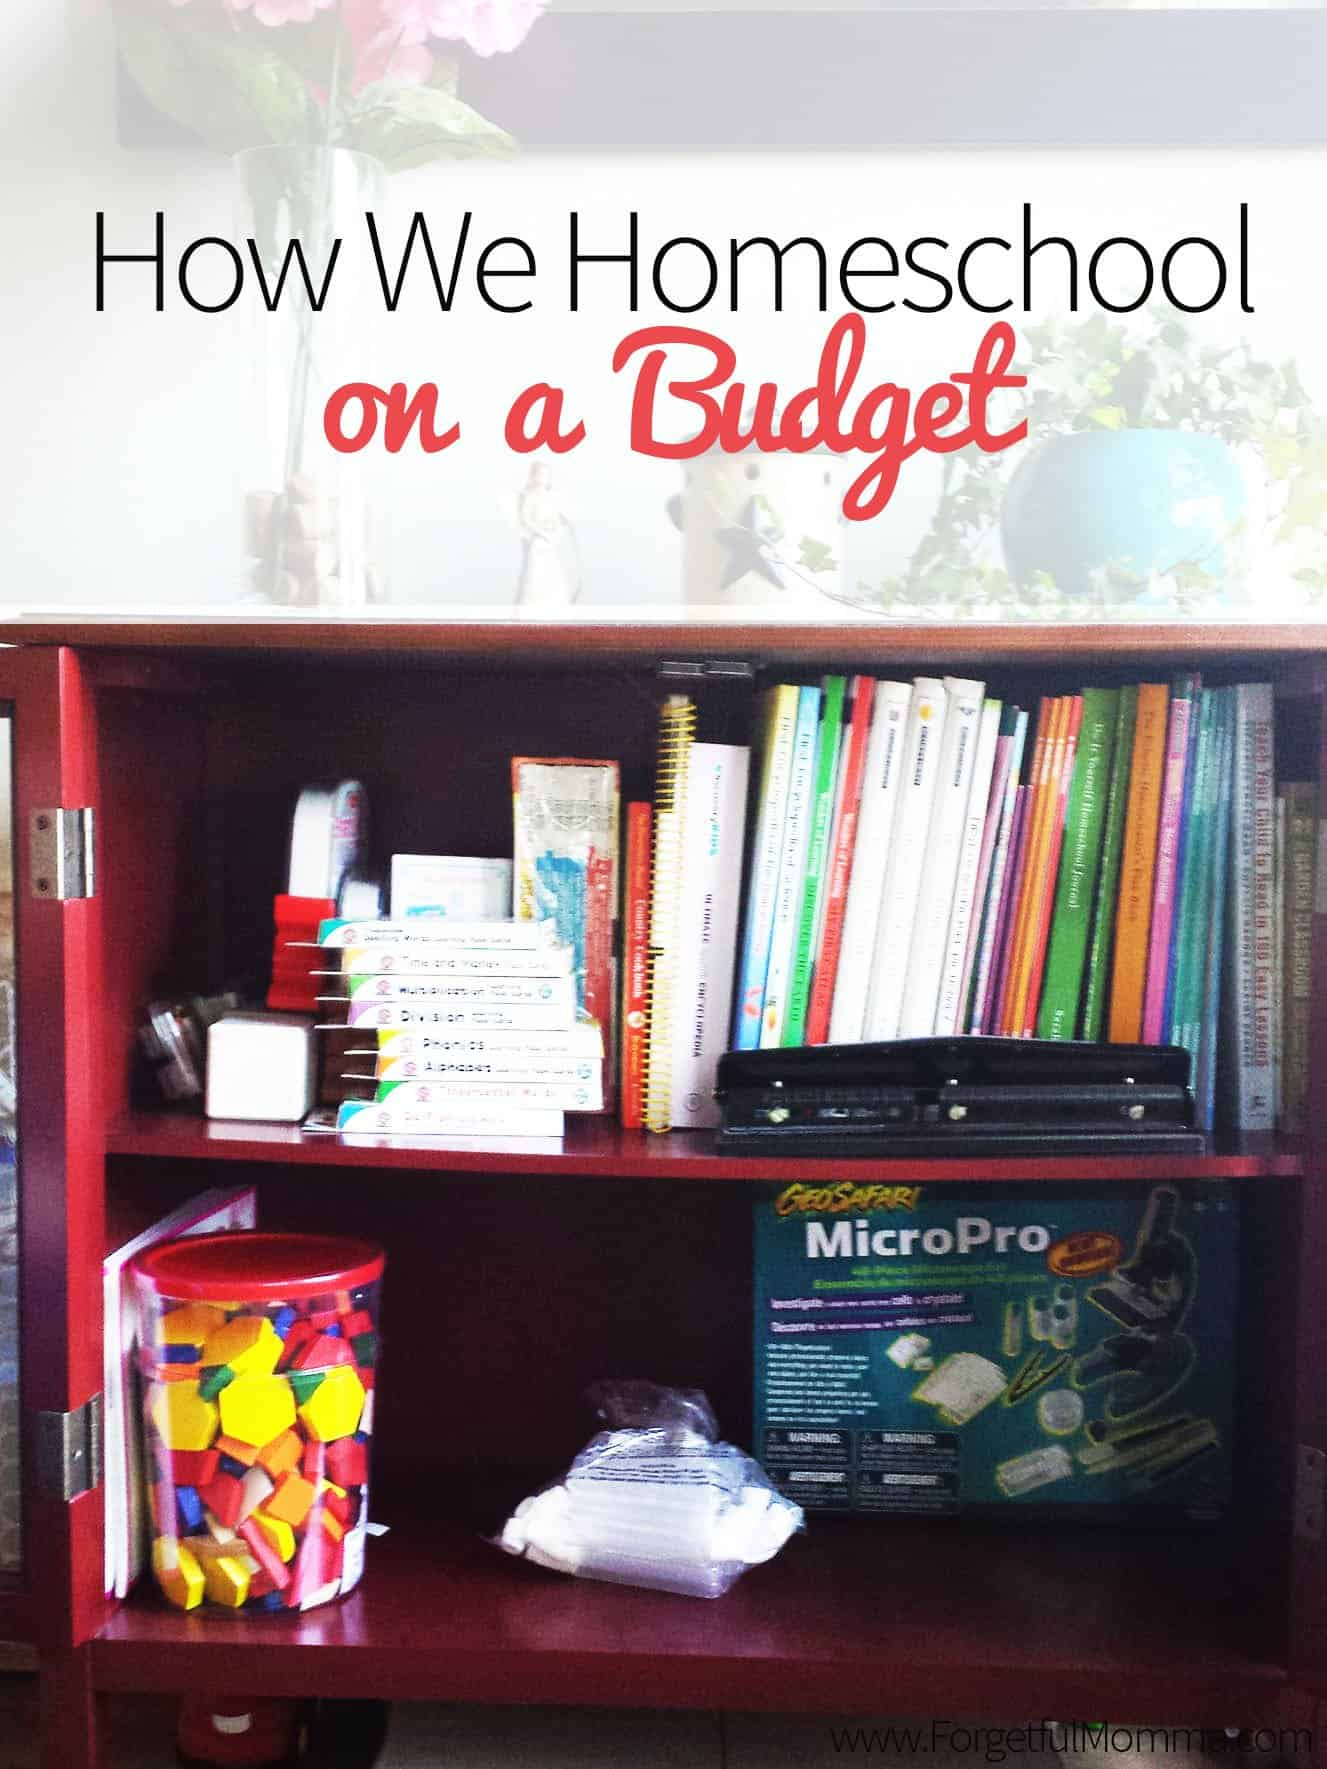 how we homeschool on a budget